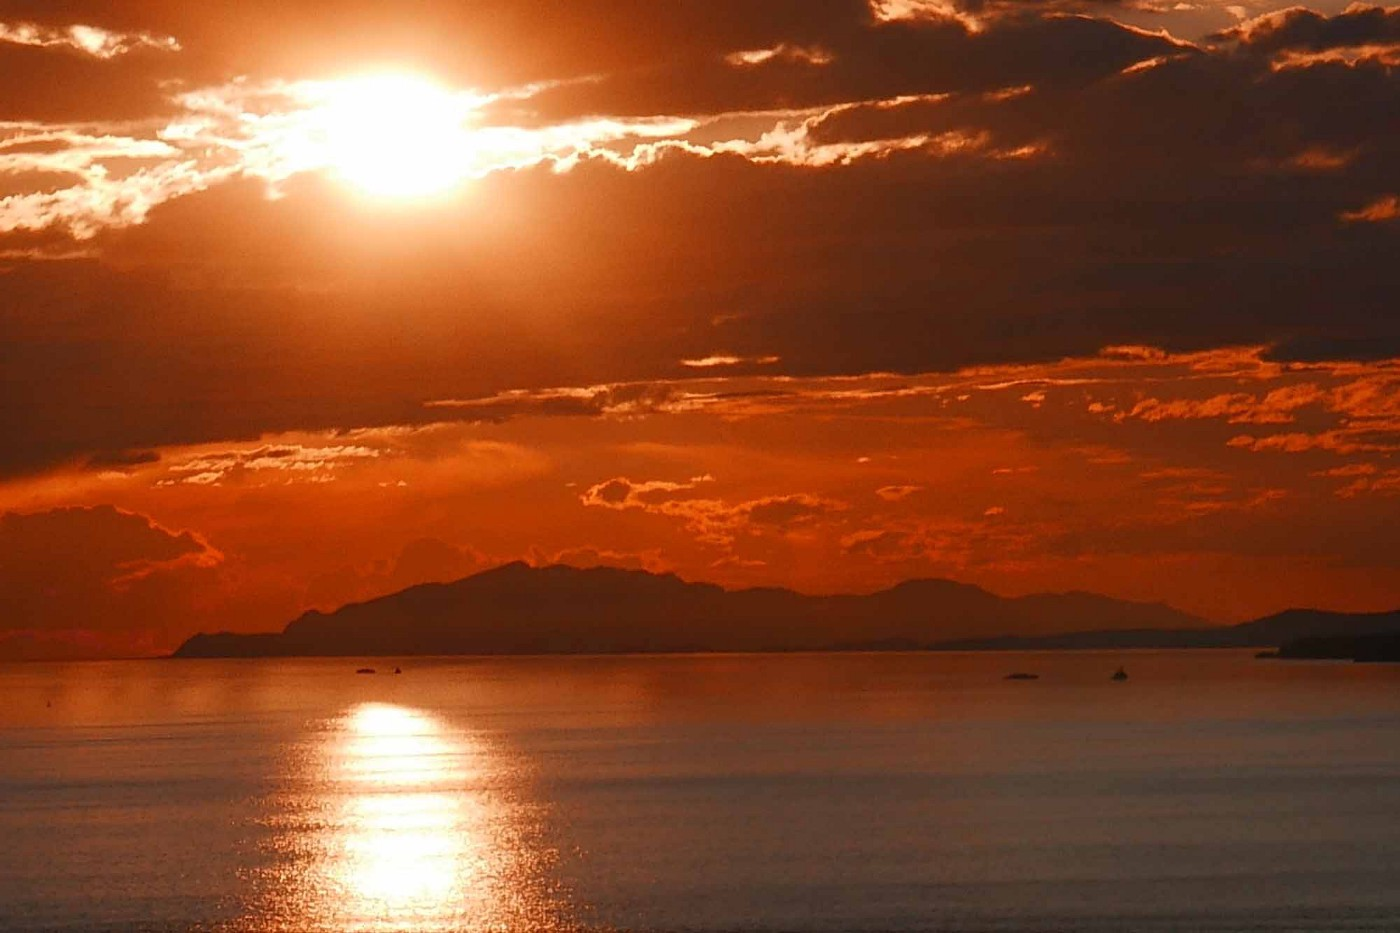 The sun spills through tattered layers of crimson clouds reflecting on calm water punctuated by a few small boats. Islands demarcate sky and sea